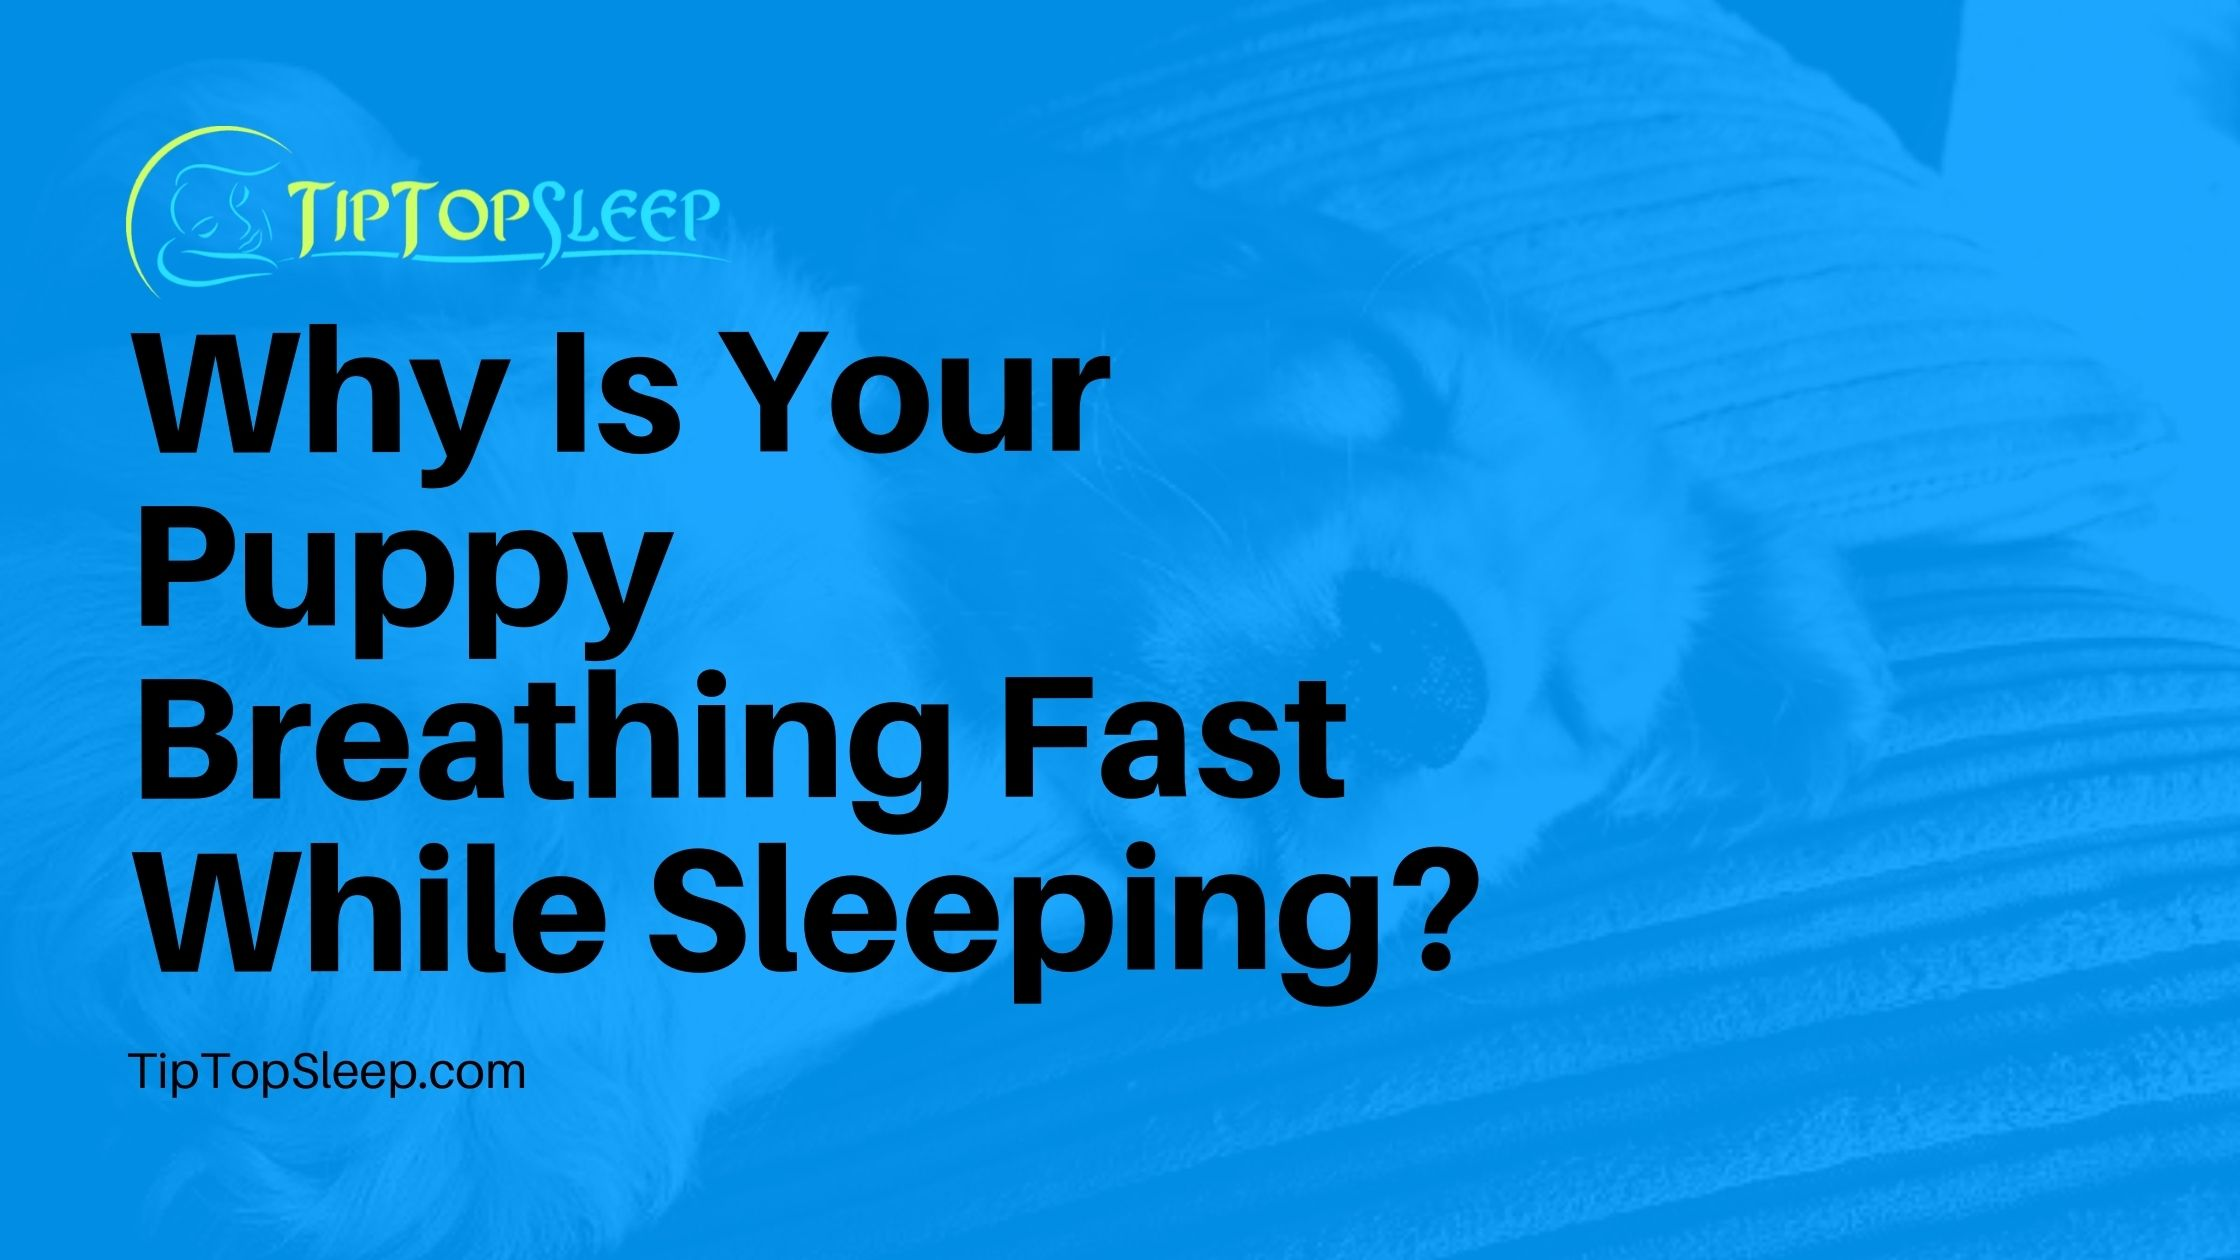 Puppy-Breathing-Fast-While-Sleeping